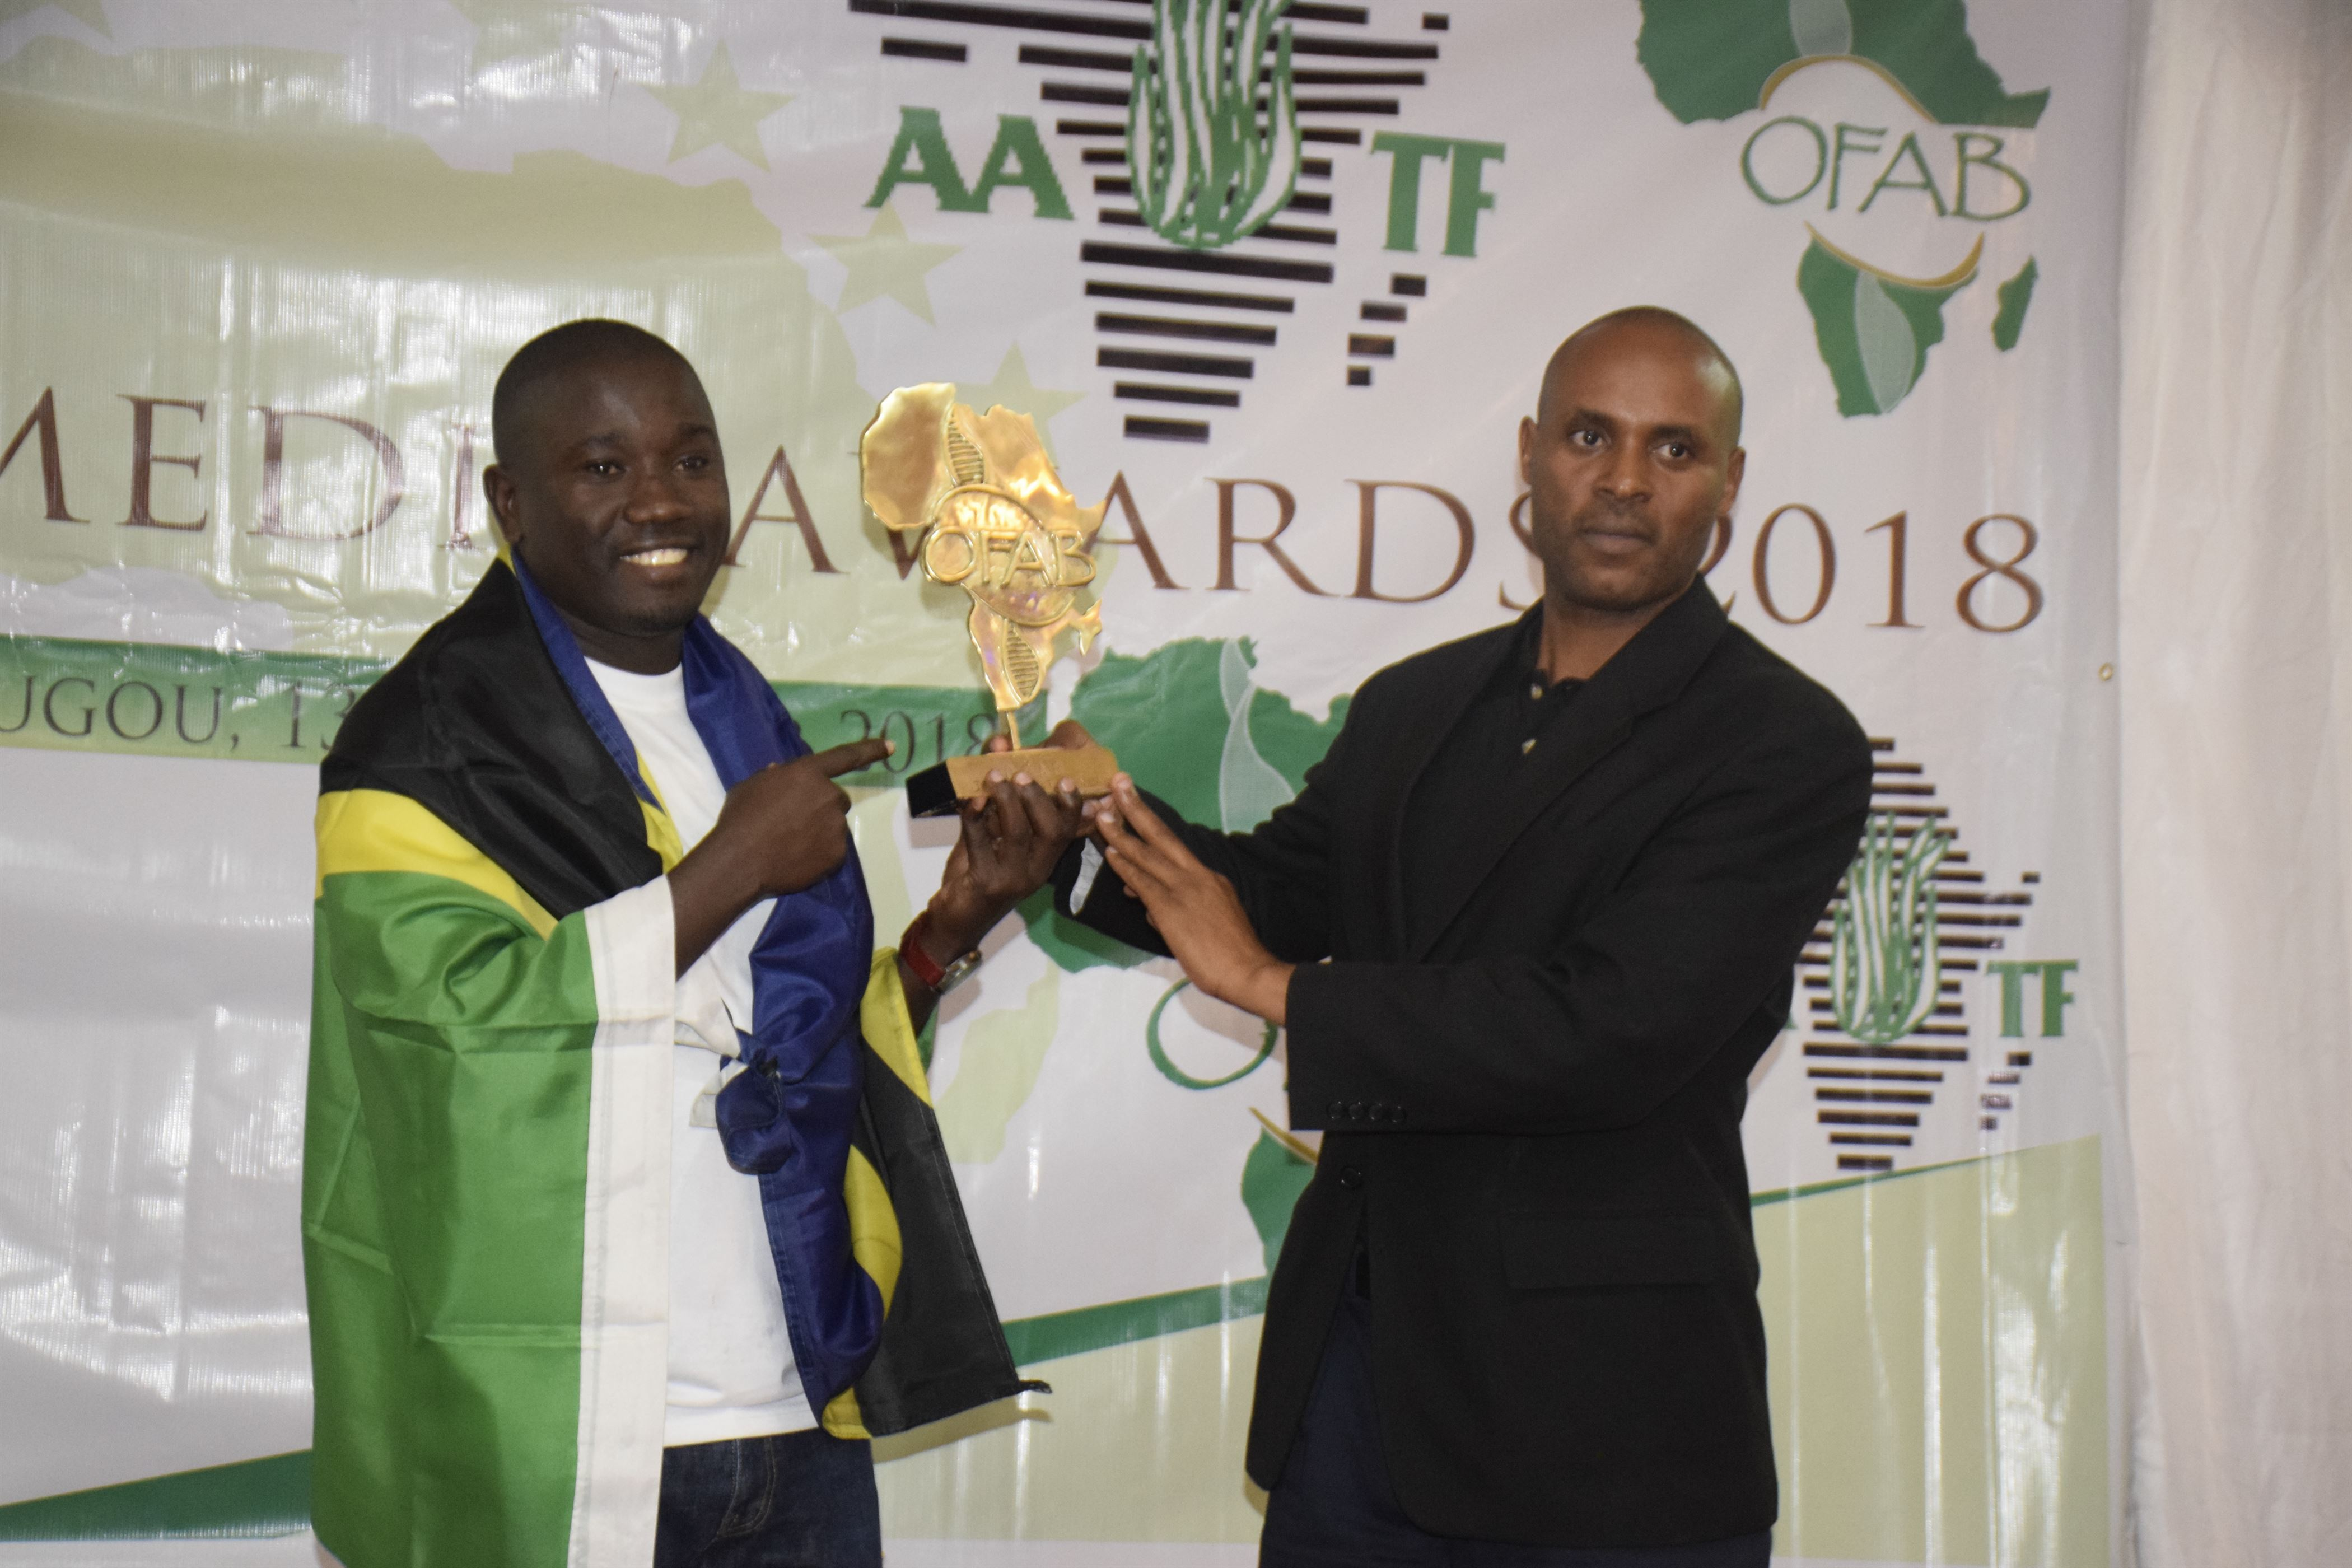 Tanzania OFAB Country cordinator Dr. Philbert Nyinondi taking a photo with winner